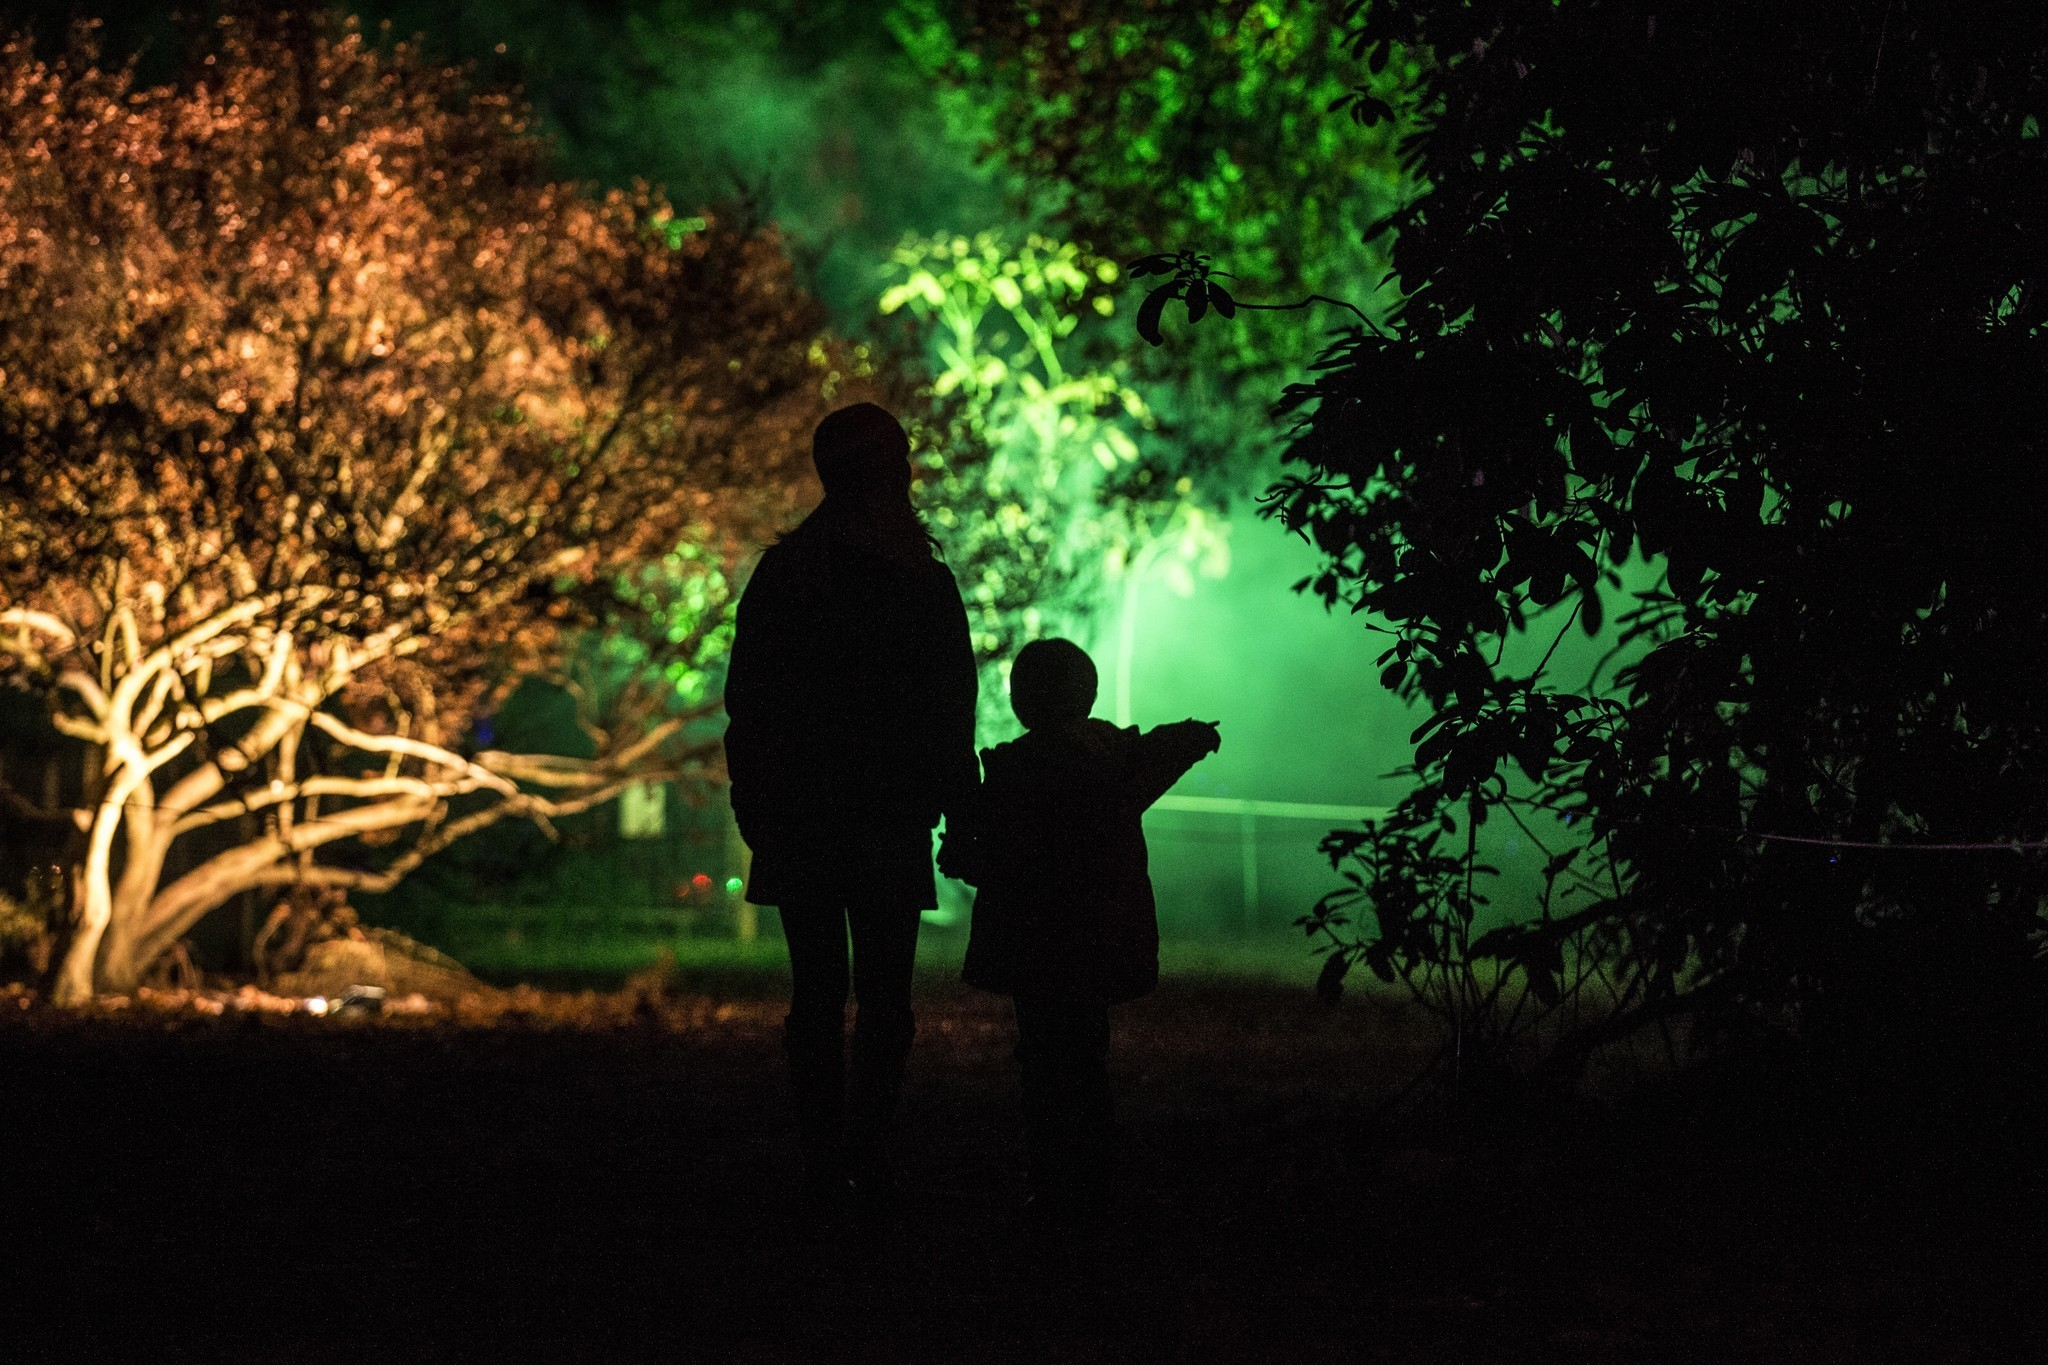 Pictures: Holiday lights from around the globe - Westonbirt Arboretum Lights Up An Illuminated Trail